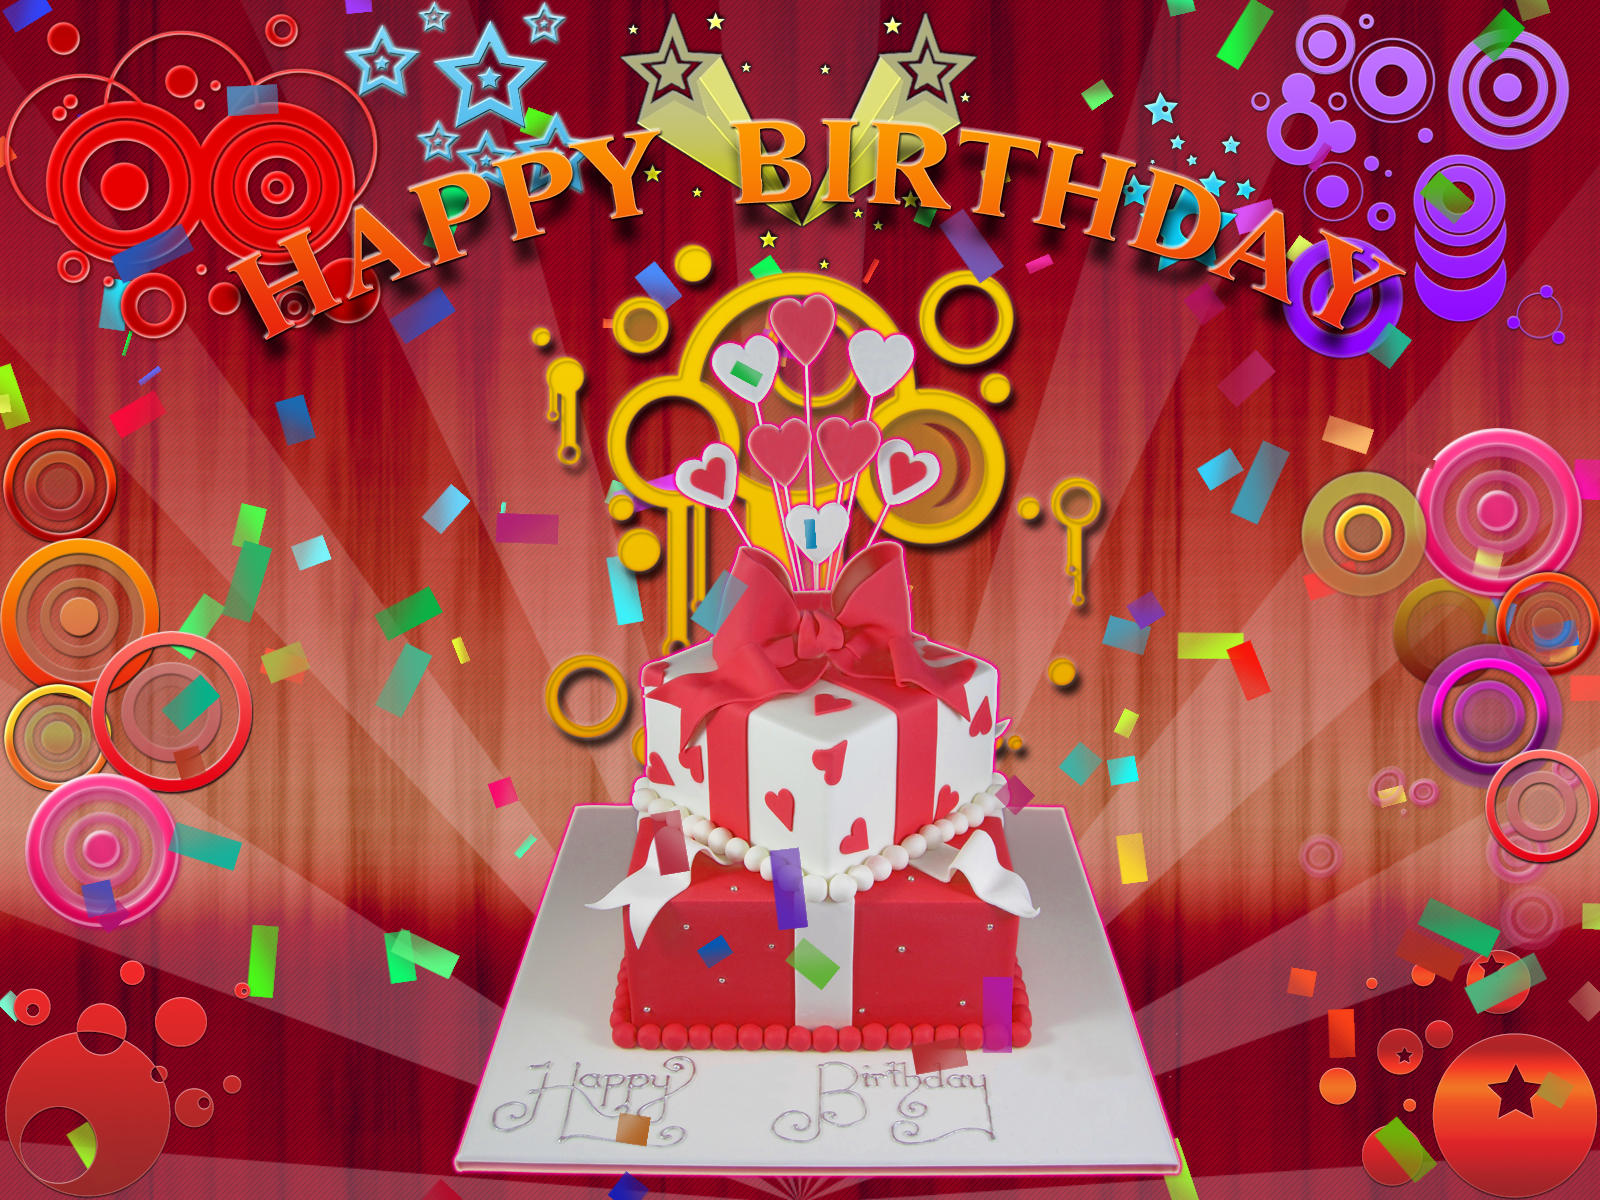 birthday wallpapers Best Wallpapers Here 1600x1200